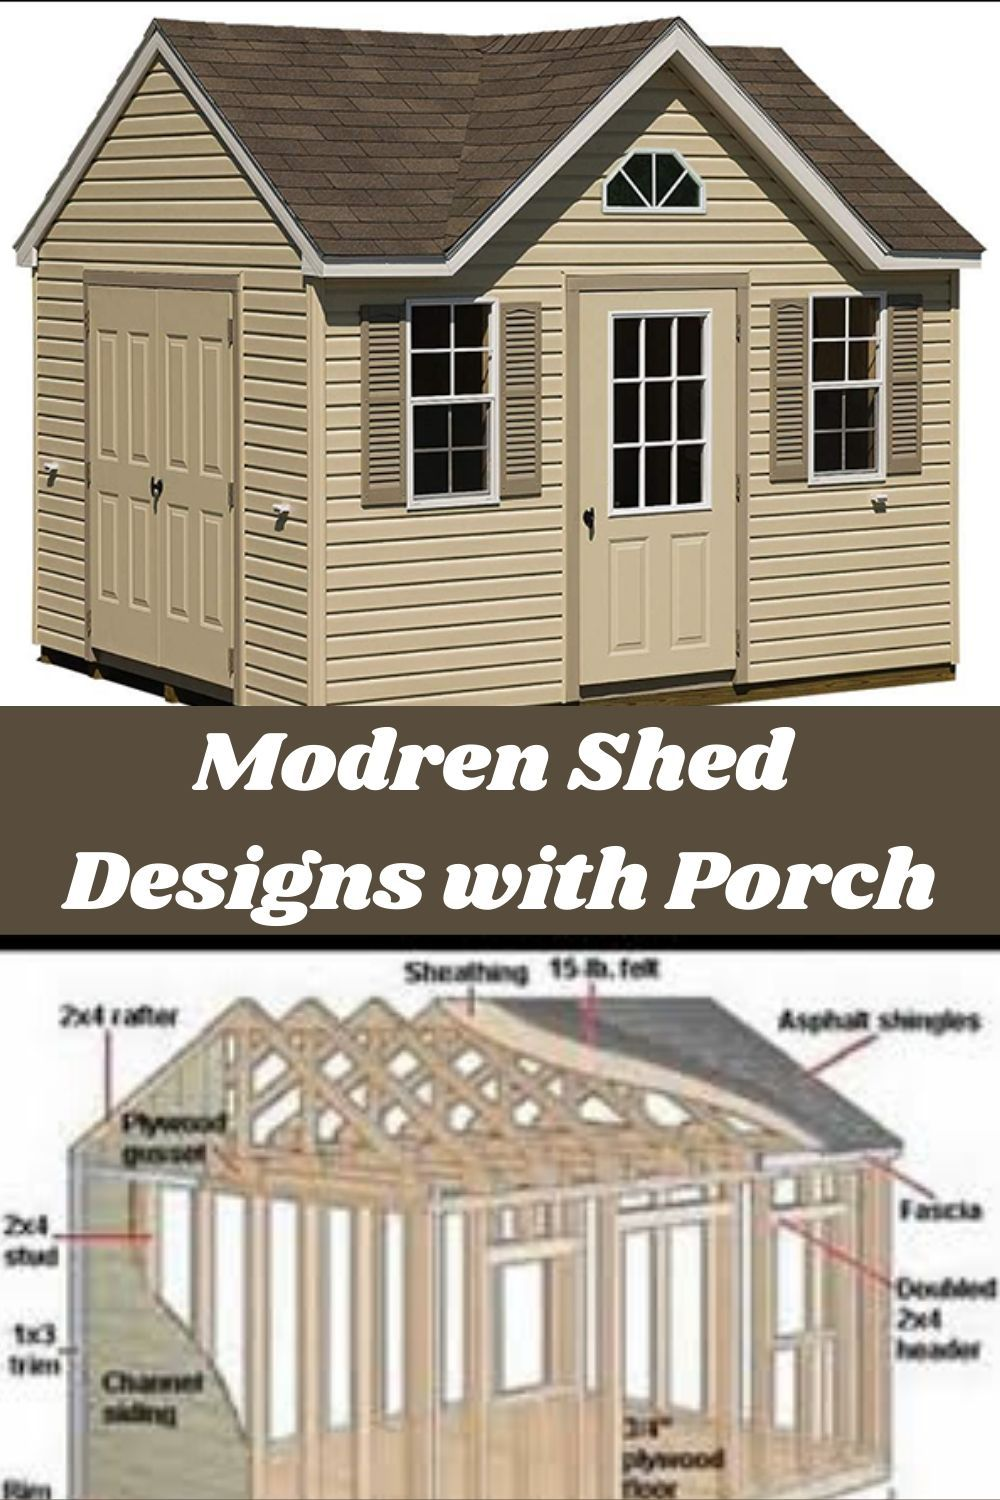 Modern Shed Design With Porch Building Plans Diy Projects In 2020 Shed Design Shed Roof Design Modern Shed